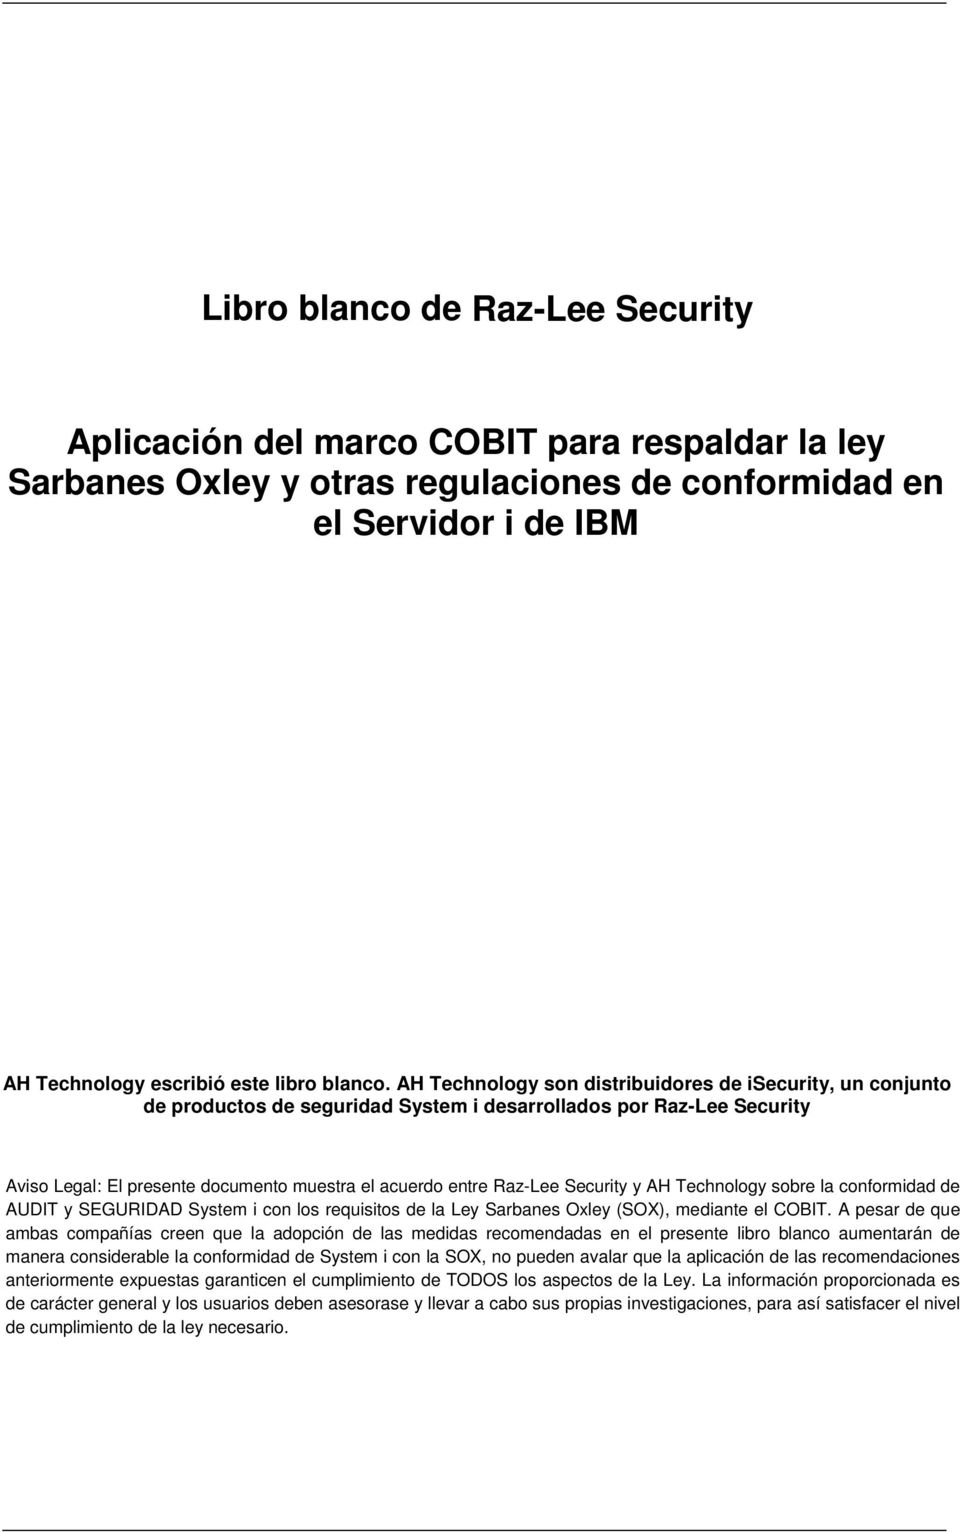 conformidad de AUDIT y SEGURIDAD System i con los requisitos de la Ley Sarbanes Oxley (SOX), mediante el COBIT.